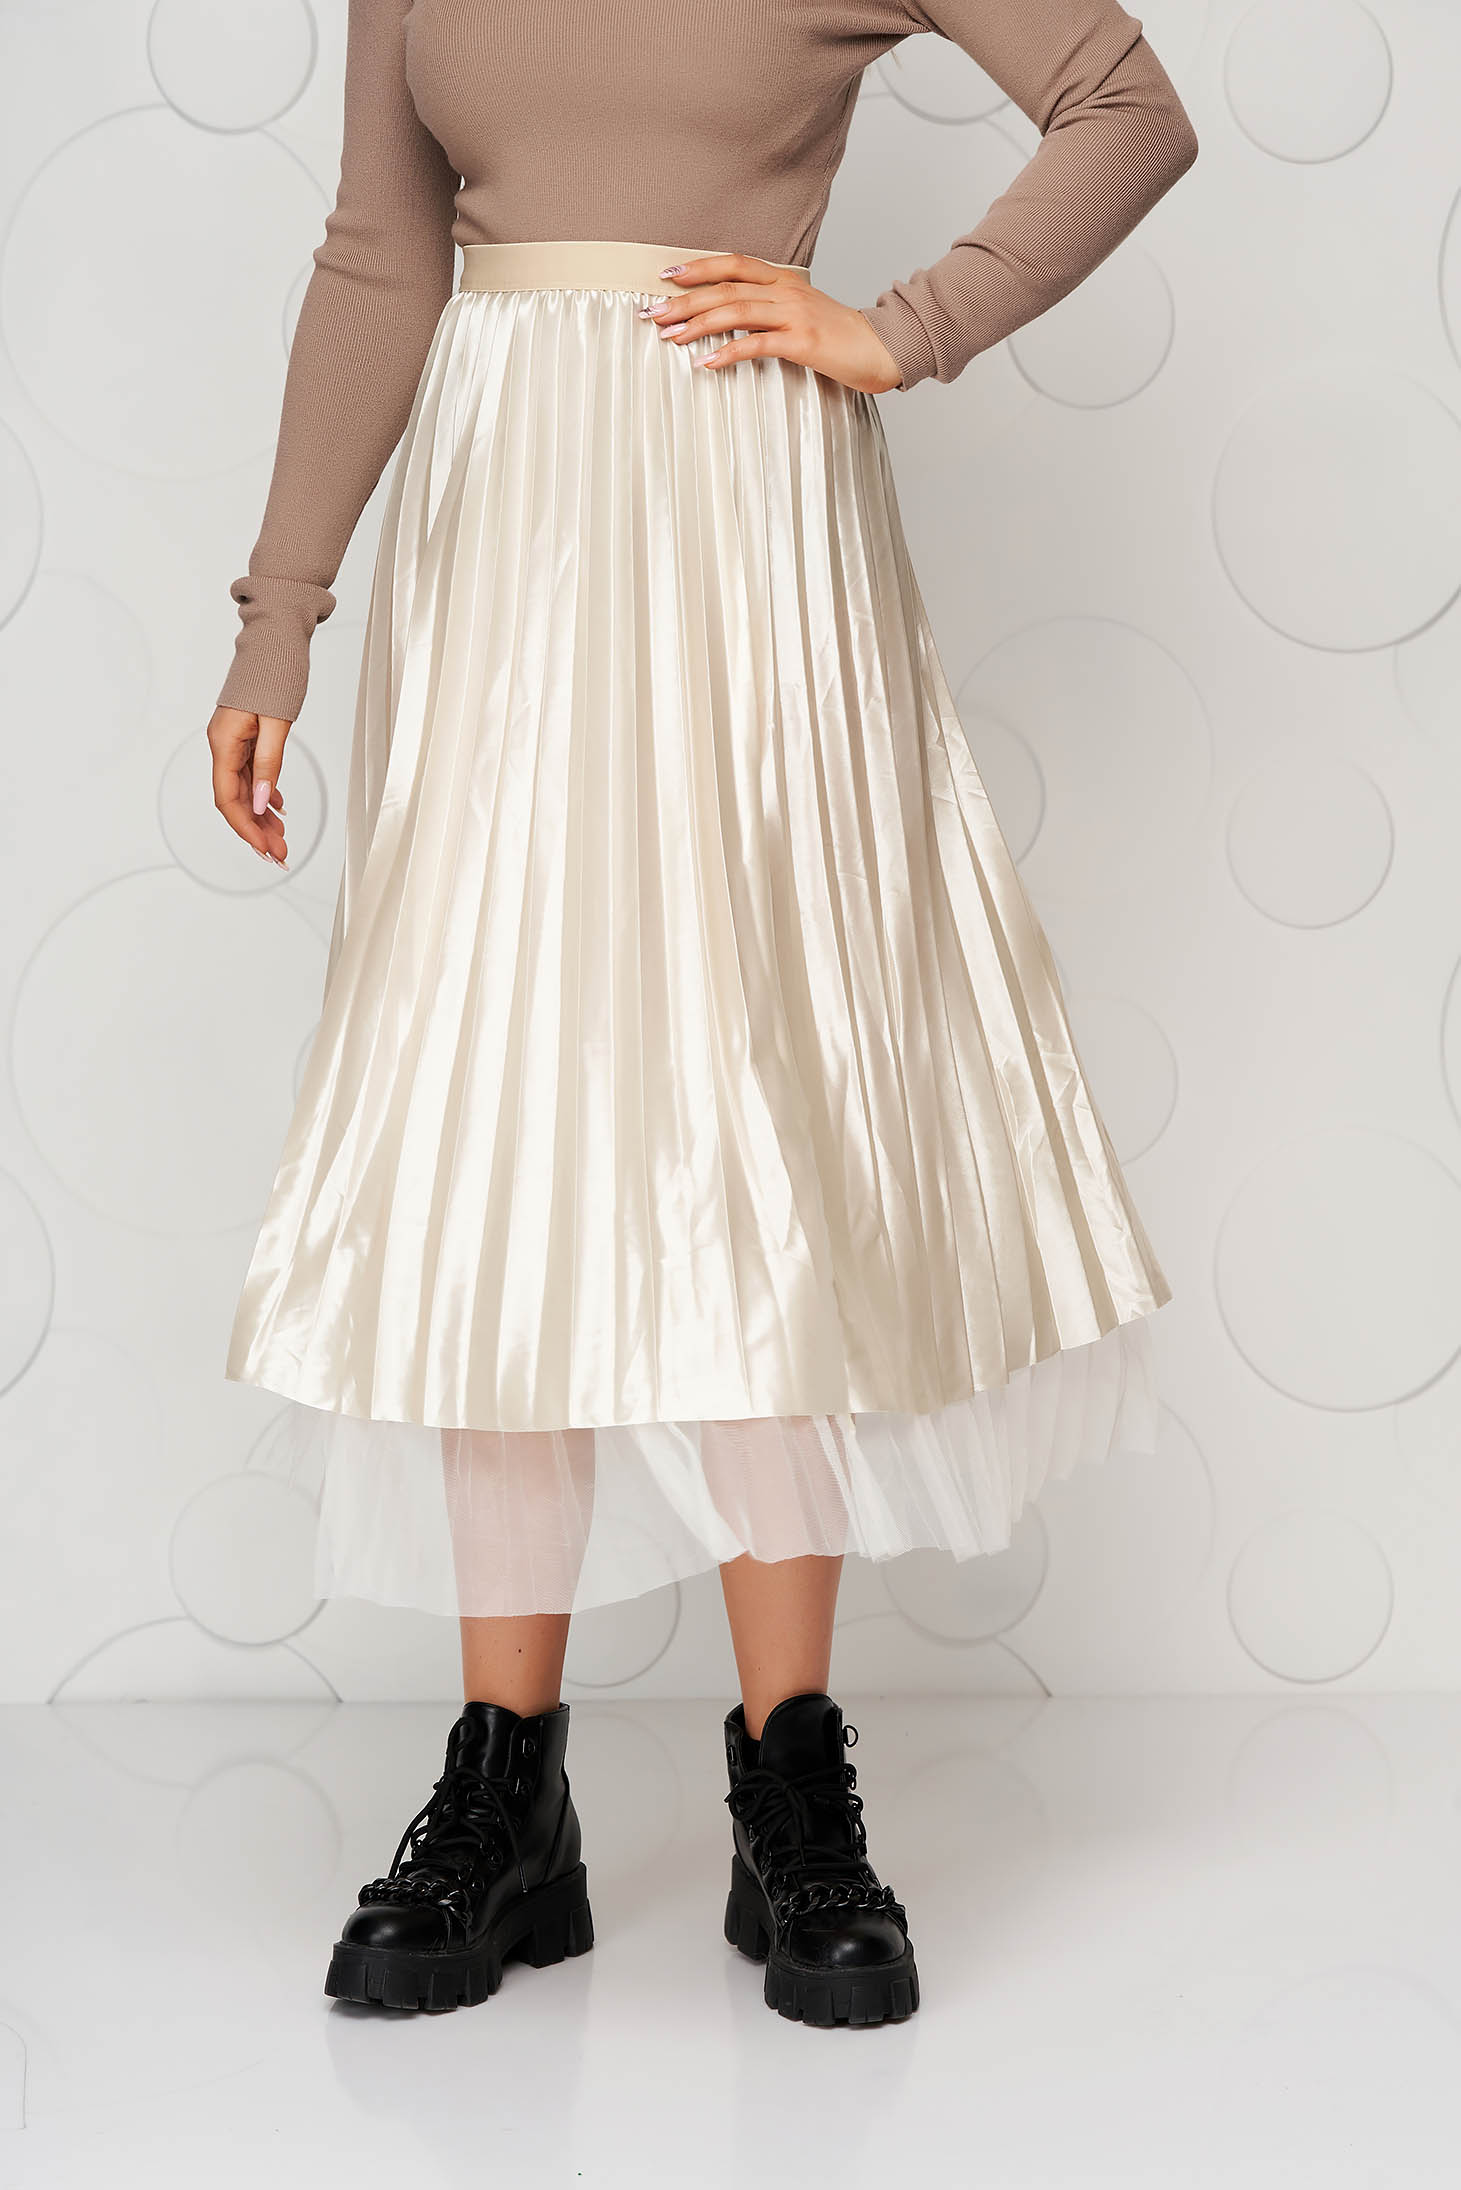 Cream skirt midi from tulle from satin folded up clubbing double-faced